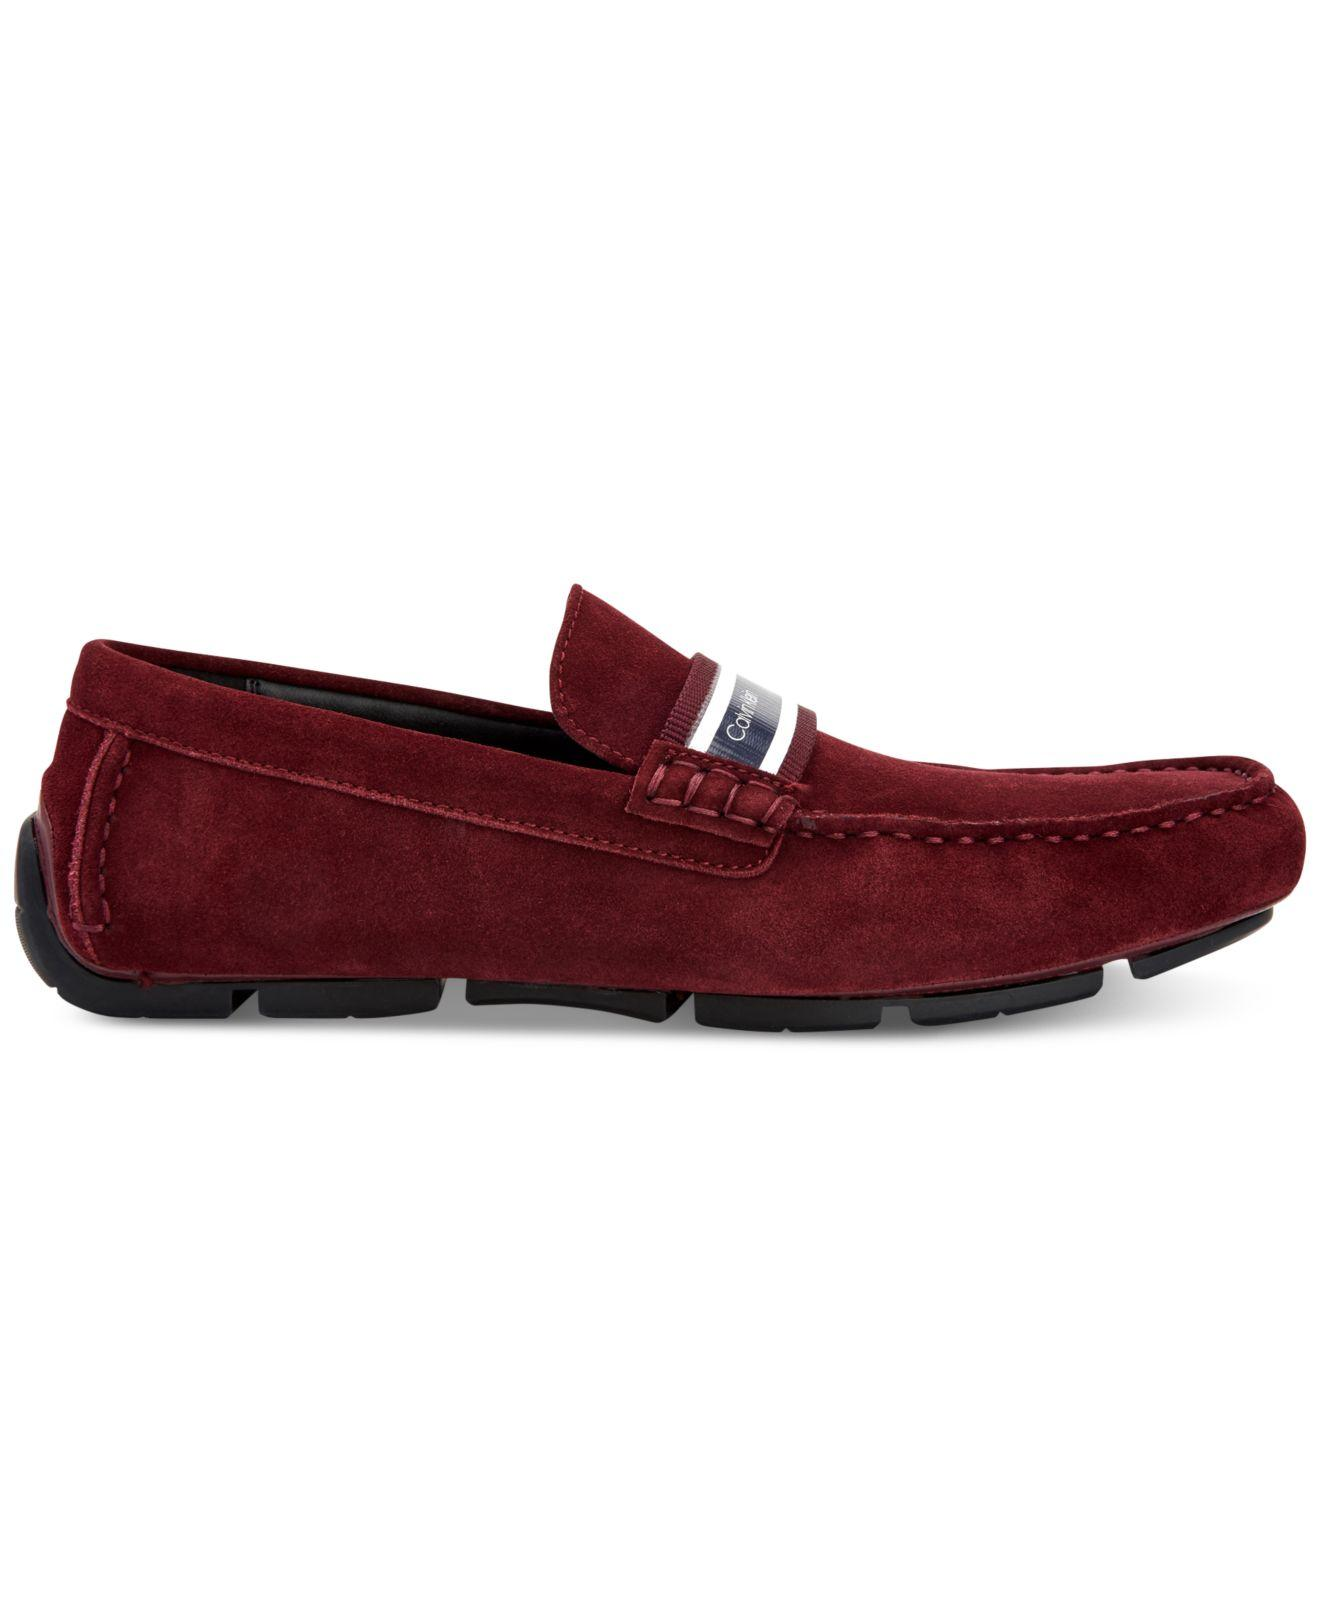 5022eb2639a Lyst - Calvin Klein Kashton Loafers in Red for Men